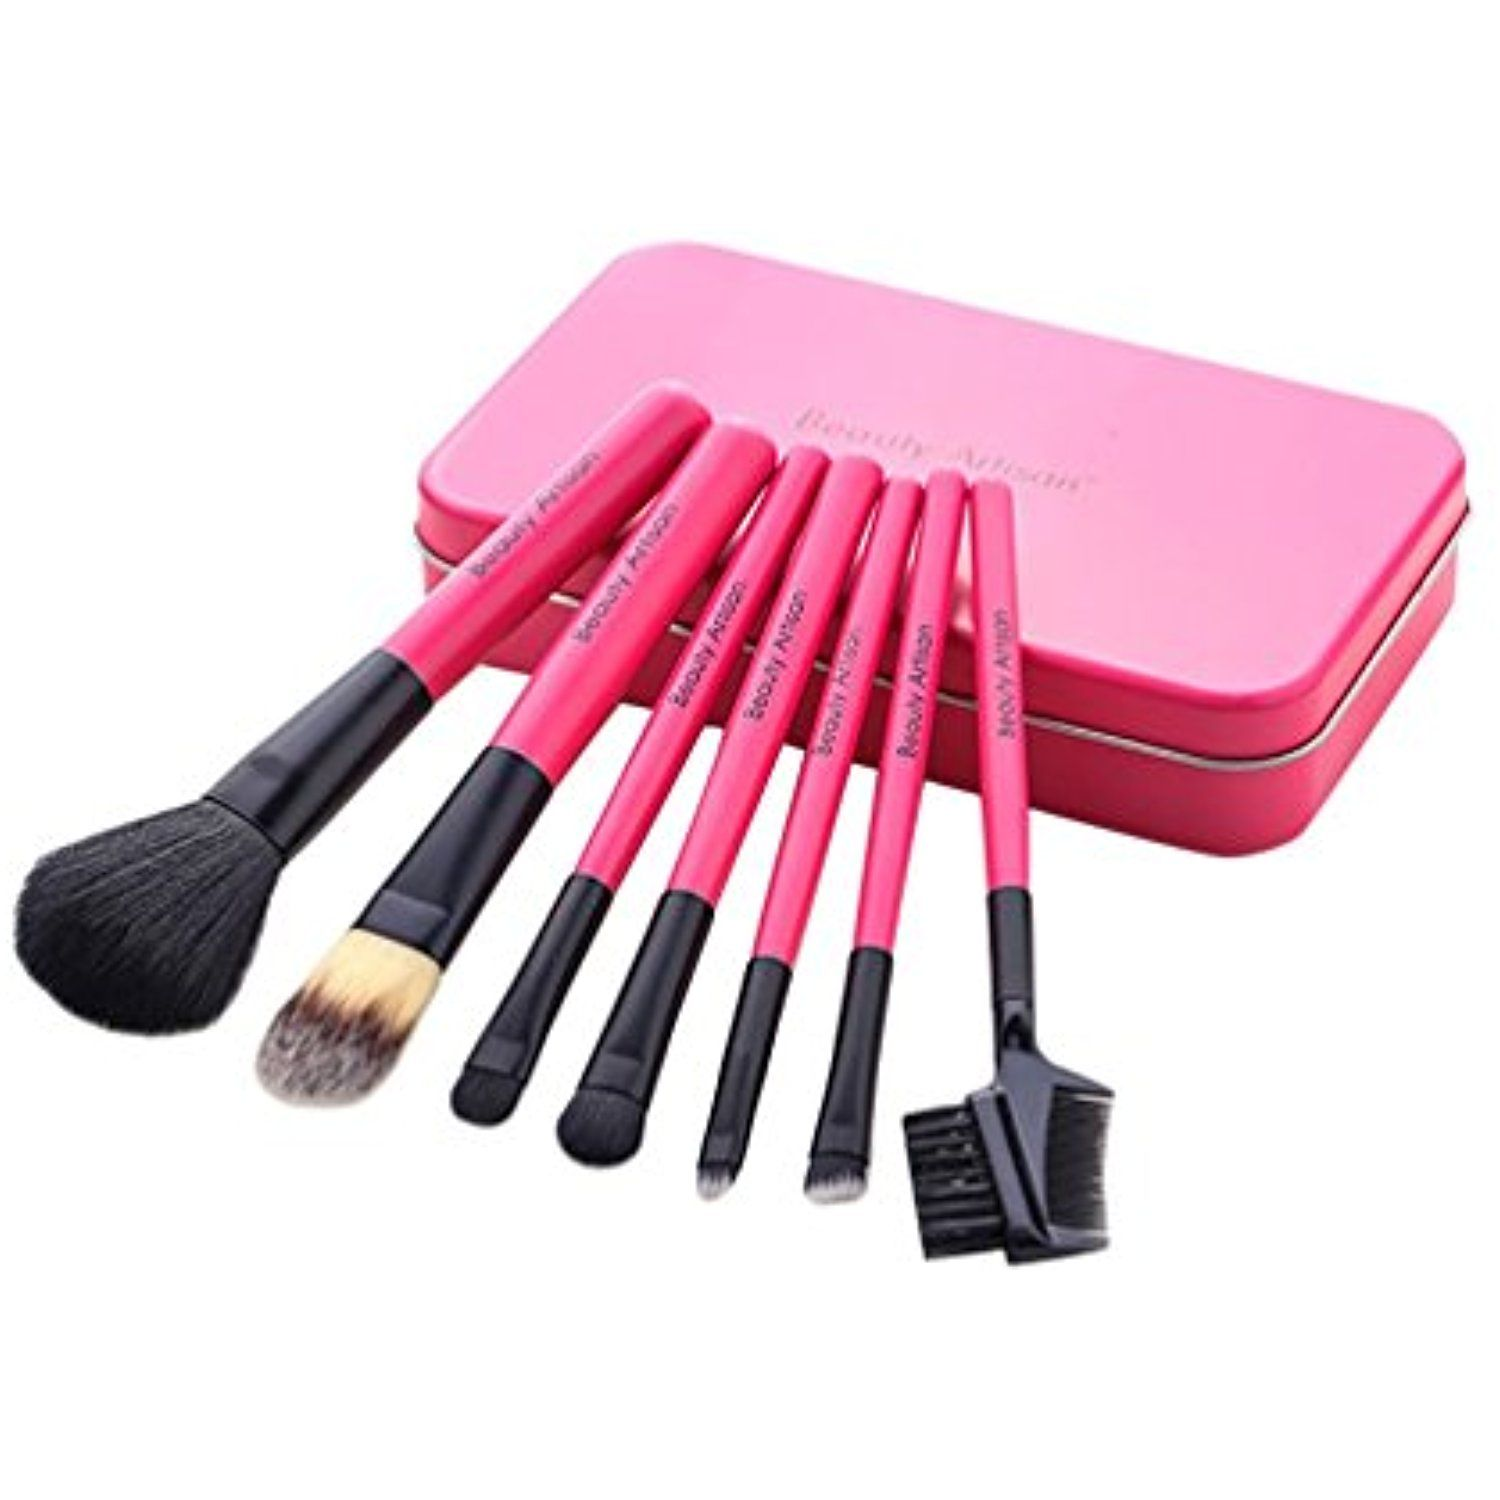 MITIAO Full Cosmetic Brushes 7 Piece Makeup Brush Sets